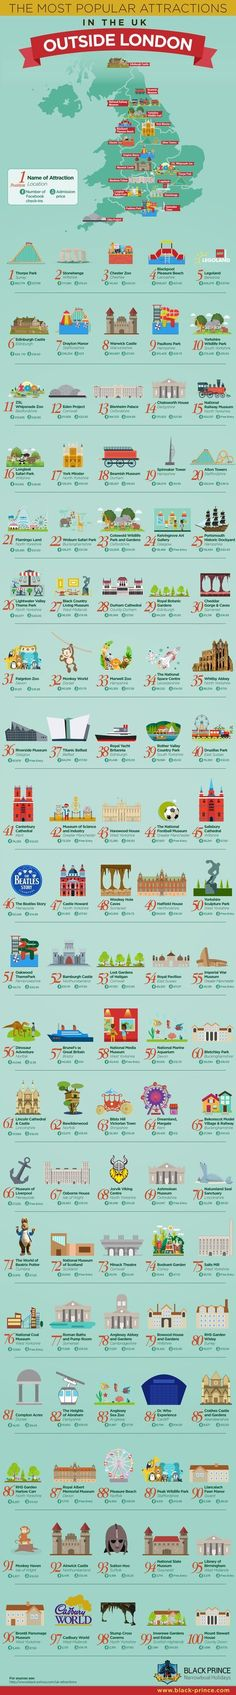 100 Most Popular Attractions Outside Of London  - If you want to travel in the UK, however, not in London then this infographic will tell you the 100 top most popular attractions outside of London. - #infographic